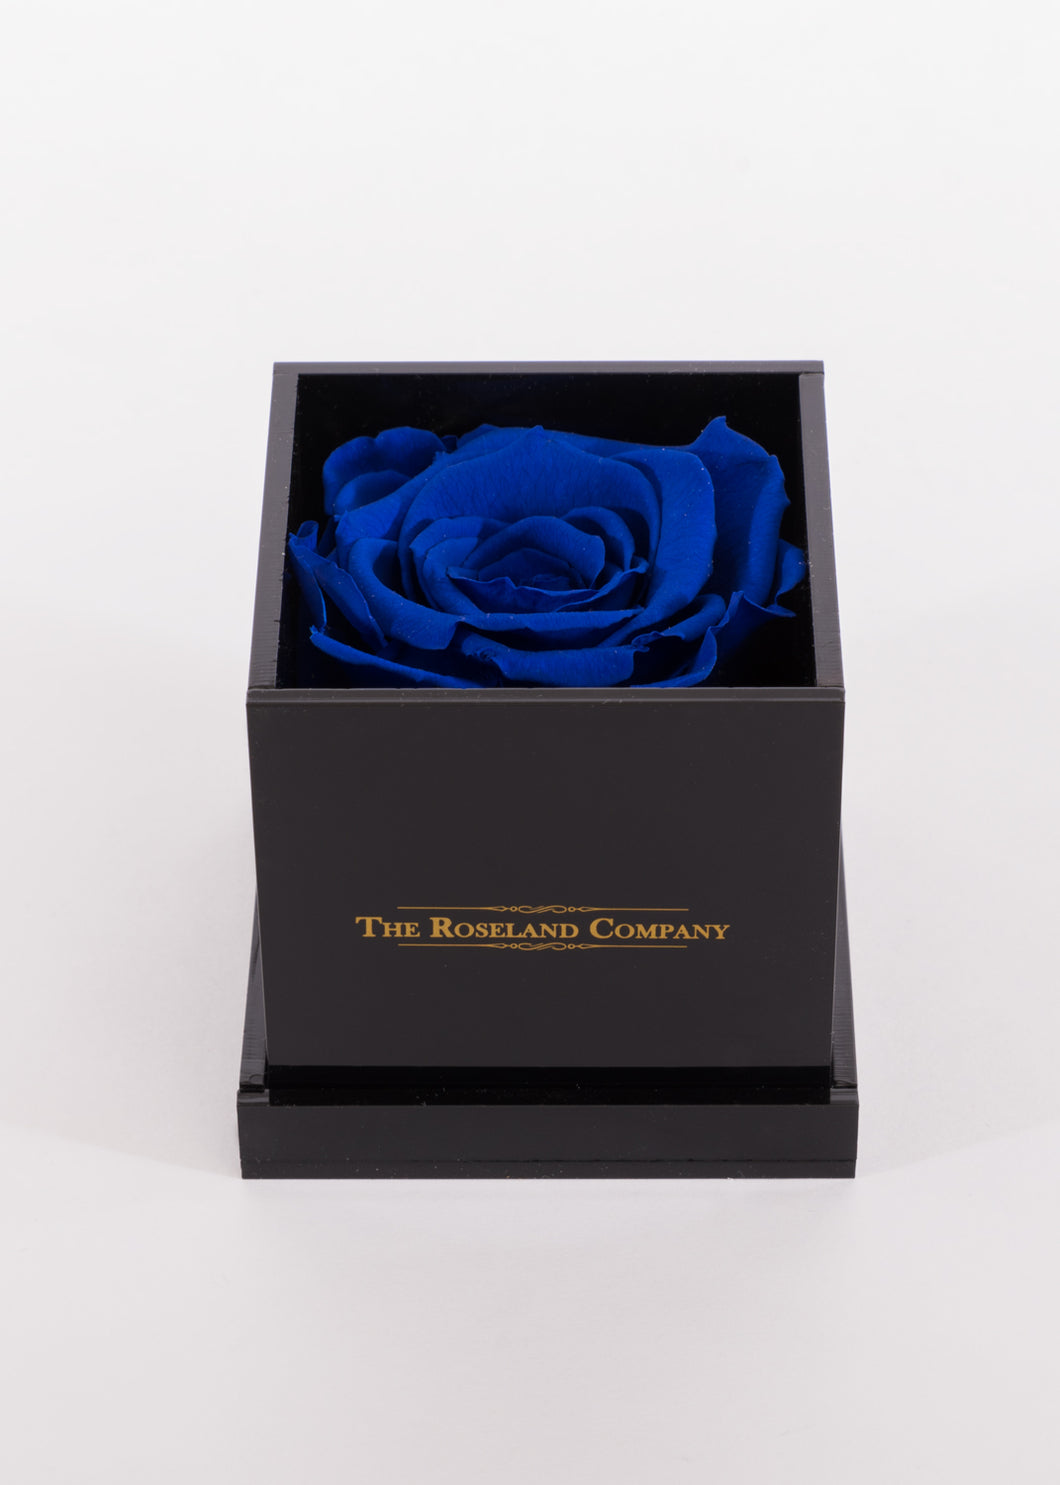 BLACK Small Cube Box with DARK BLUE Eternity Rose